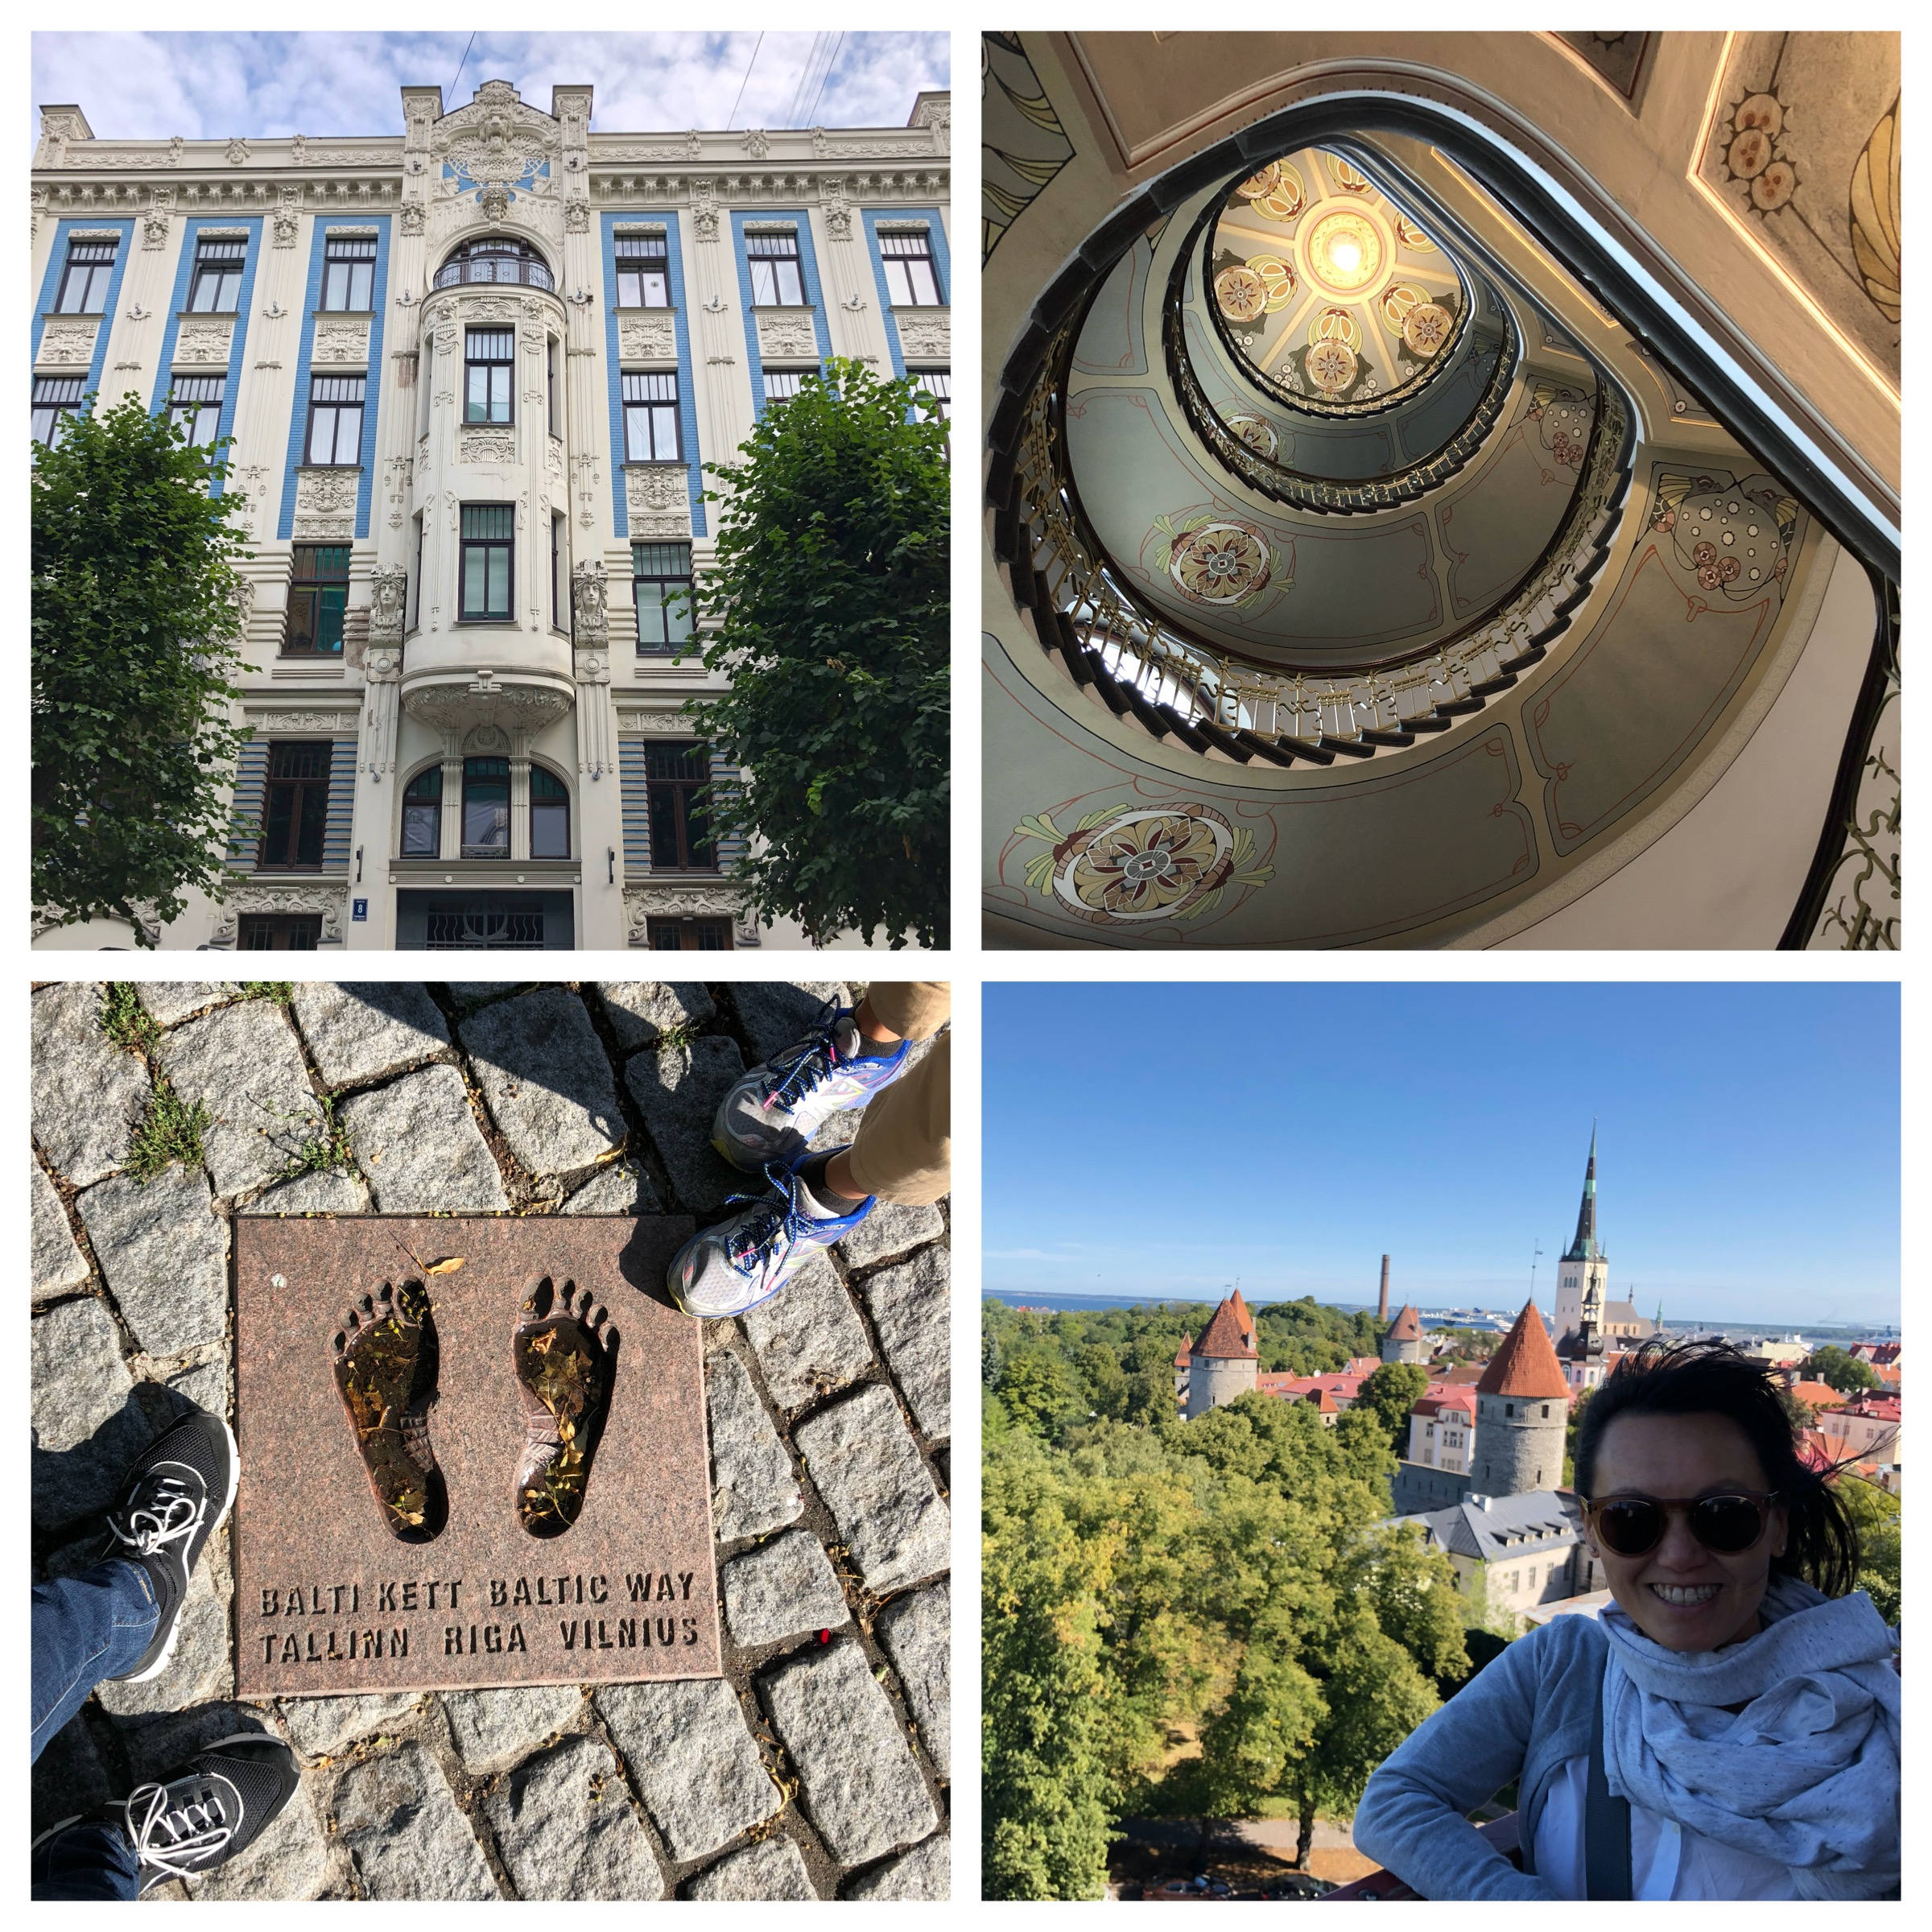 Top left and clockwise: Art Nouveau District, Riga, the interiors of the beautiful buildings, Linh at the Tallinn Old Town, the end of the Baltic Way, Tallinn.